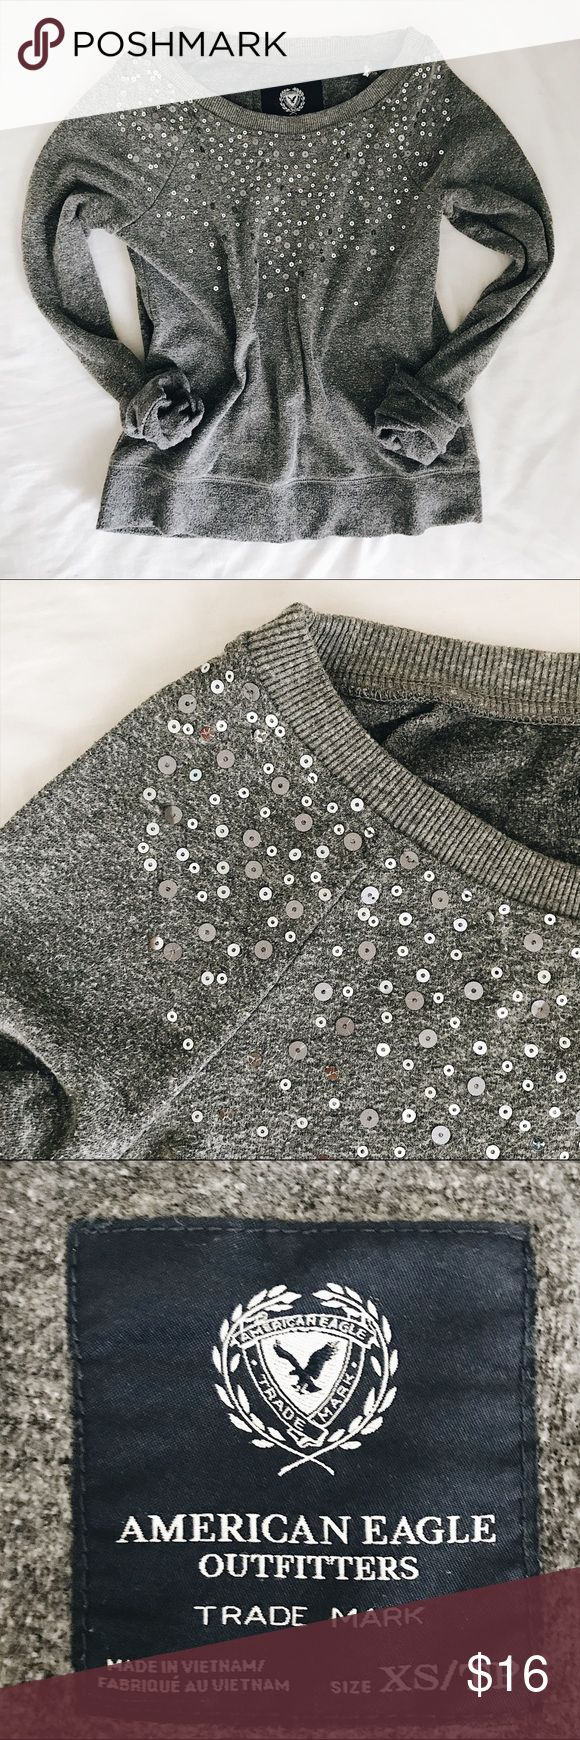 American Eagle Fleece Sequin Pullover Sweatshirt *CONSIDERING OFFERS! No trades.* Super cute and cozy heather grey pullover fleece sweatshirt from American Eagle Outfitters with silver sequins for added sparkle. In great condition and an awesome addition to any cozy girls wardrobe  American Eagle Outfitters Tops Sweatshirts & Hoodies